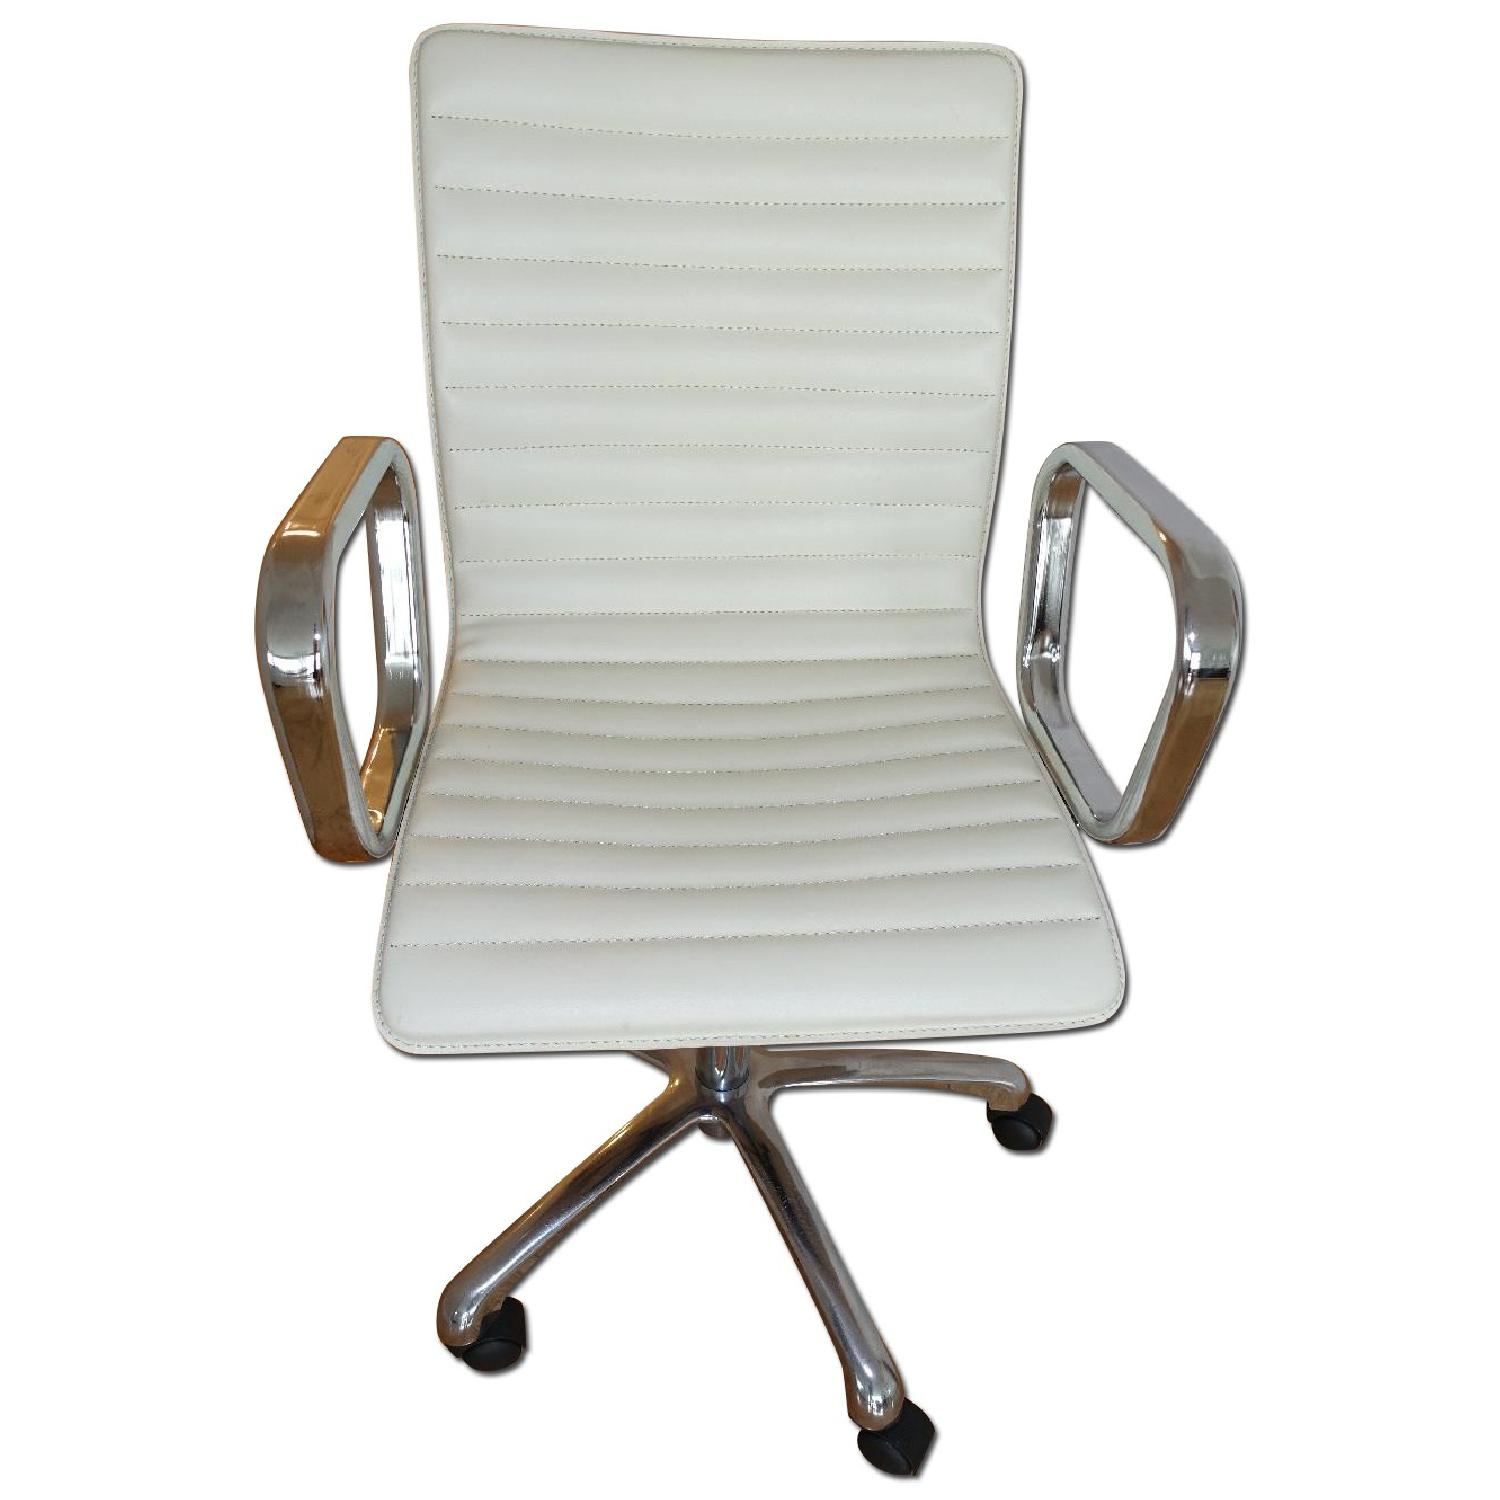 Crate Barrel Ripple Ivory Leather Office Chair Aptdeco